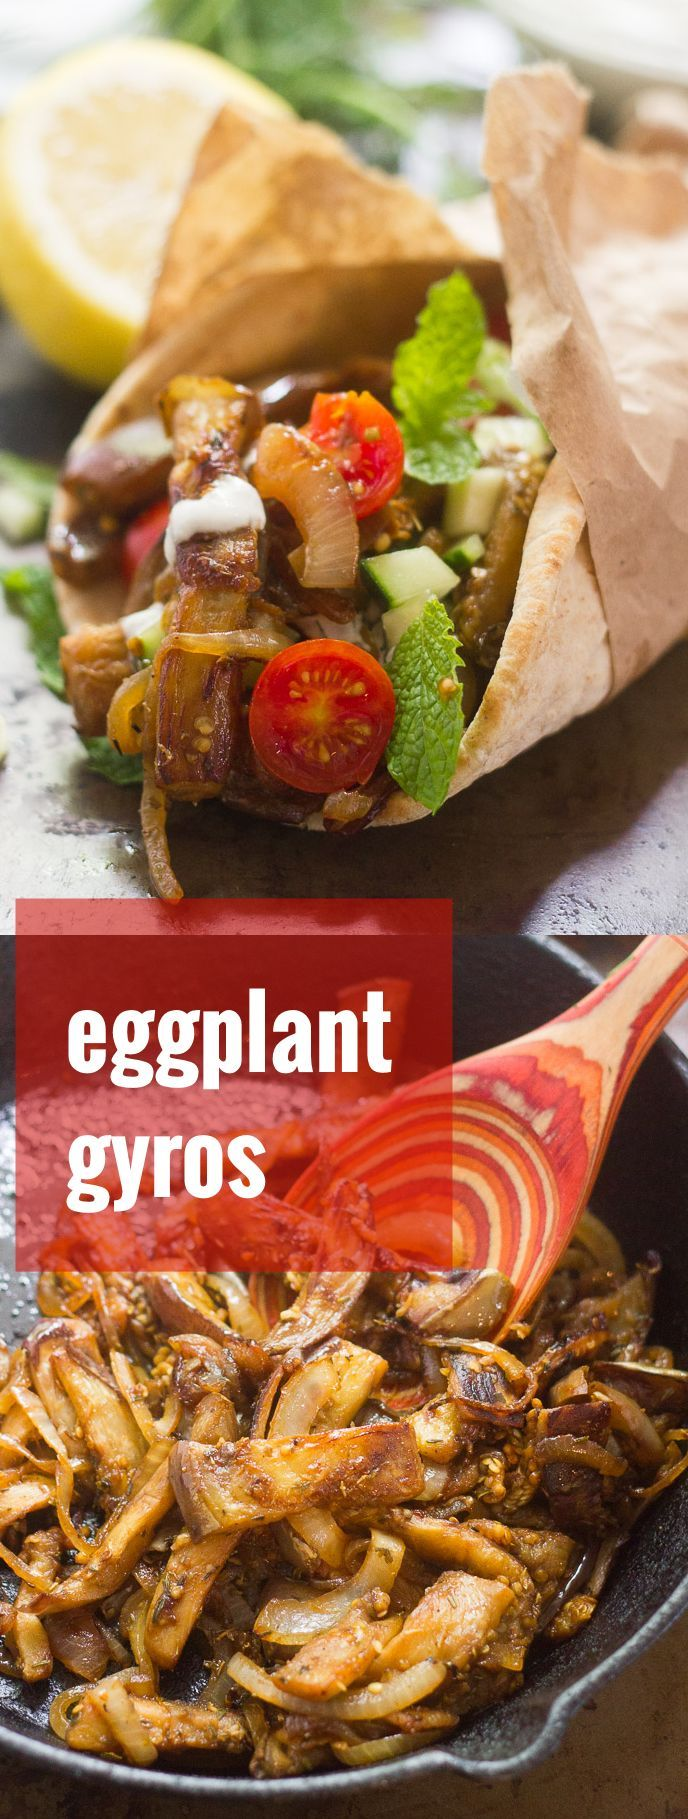 These vegan eggplant gyros are made with savory pan-fried strips of seasoned eggplant, wrapped up in warp pita bread with creamy dairy-free tzatziki.